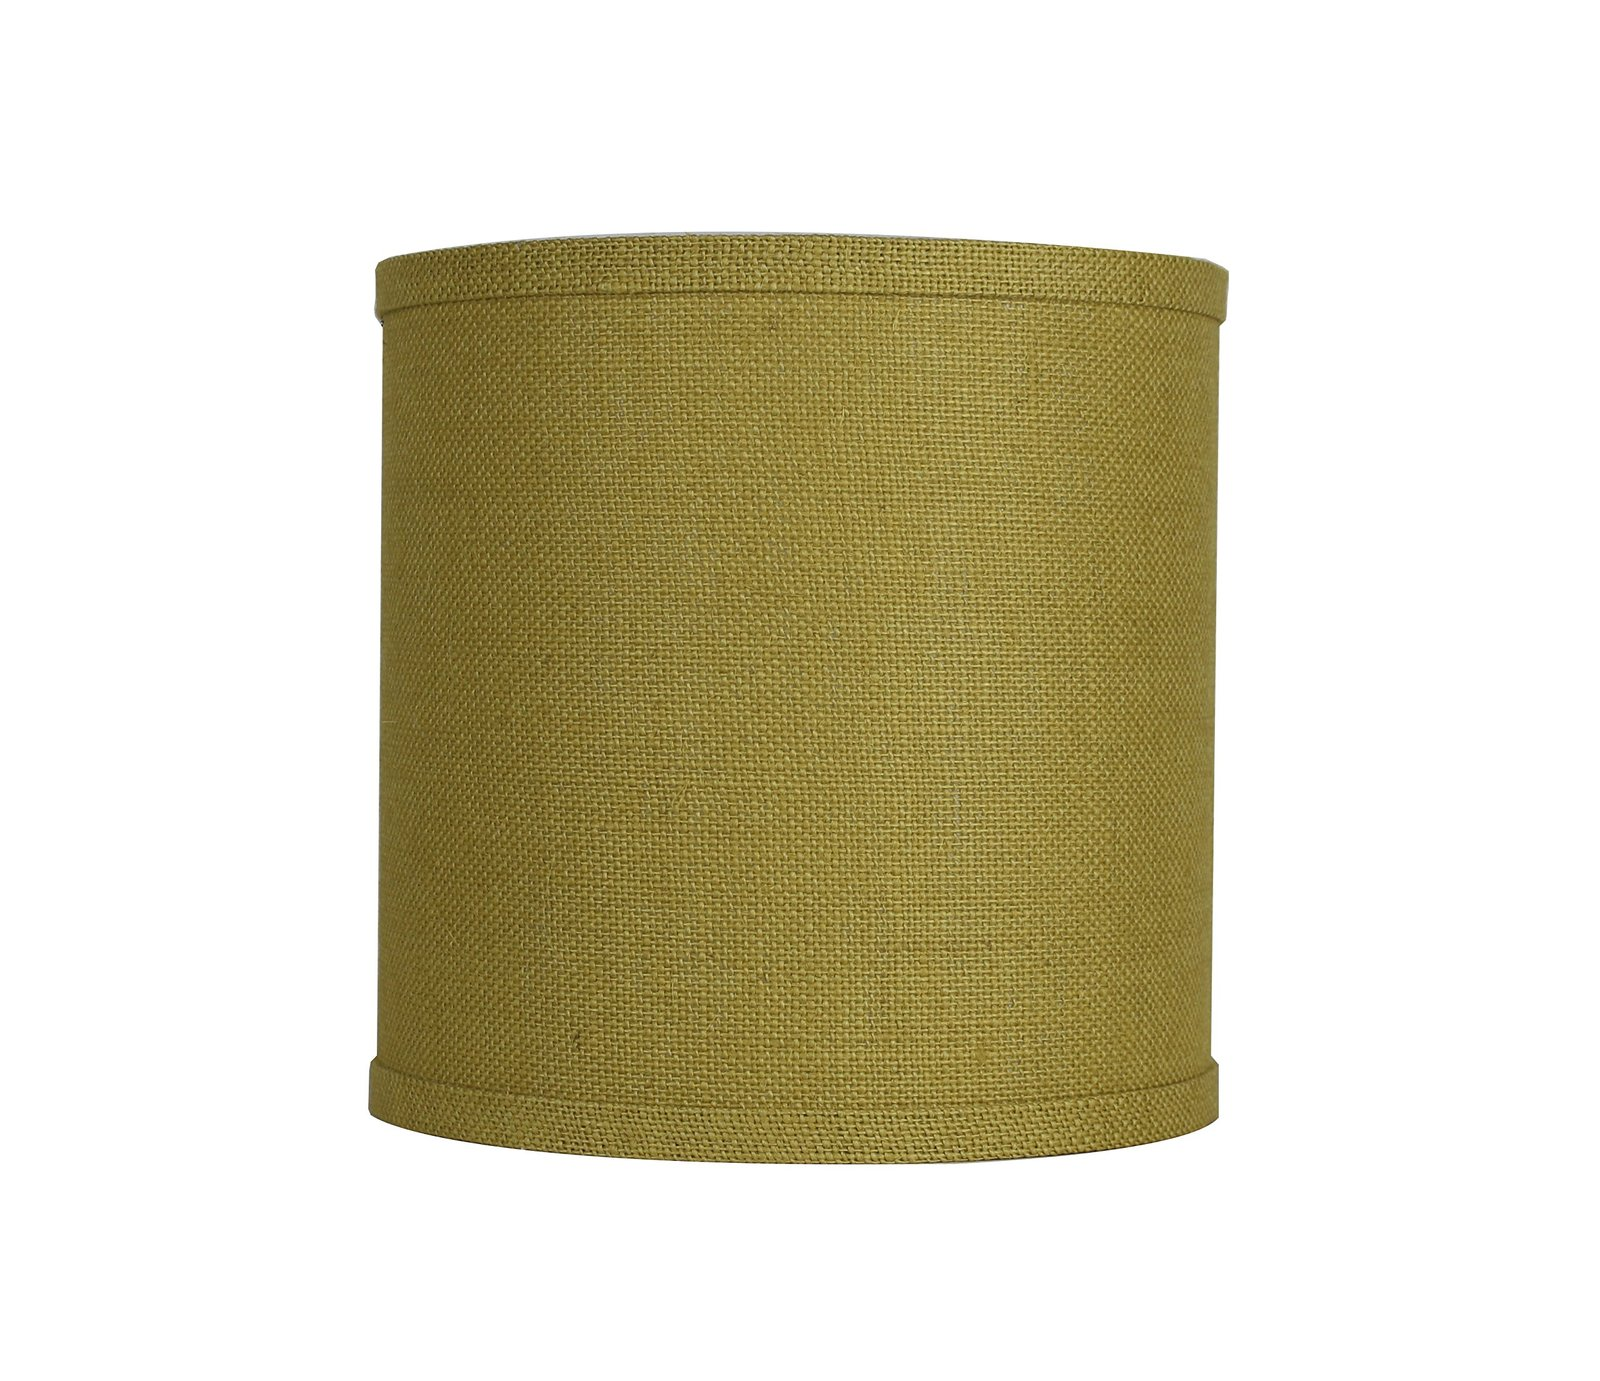 Urbanest Classic Drum Burlap Lampshade, 10-inch by 10-inch by 10-inch, Mustard Y image 2